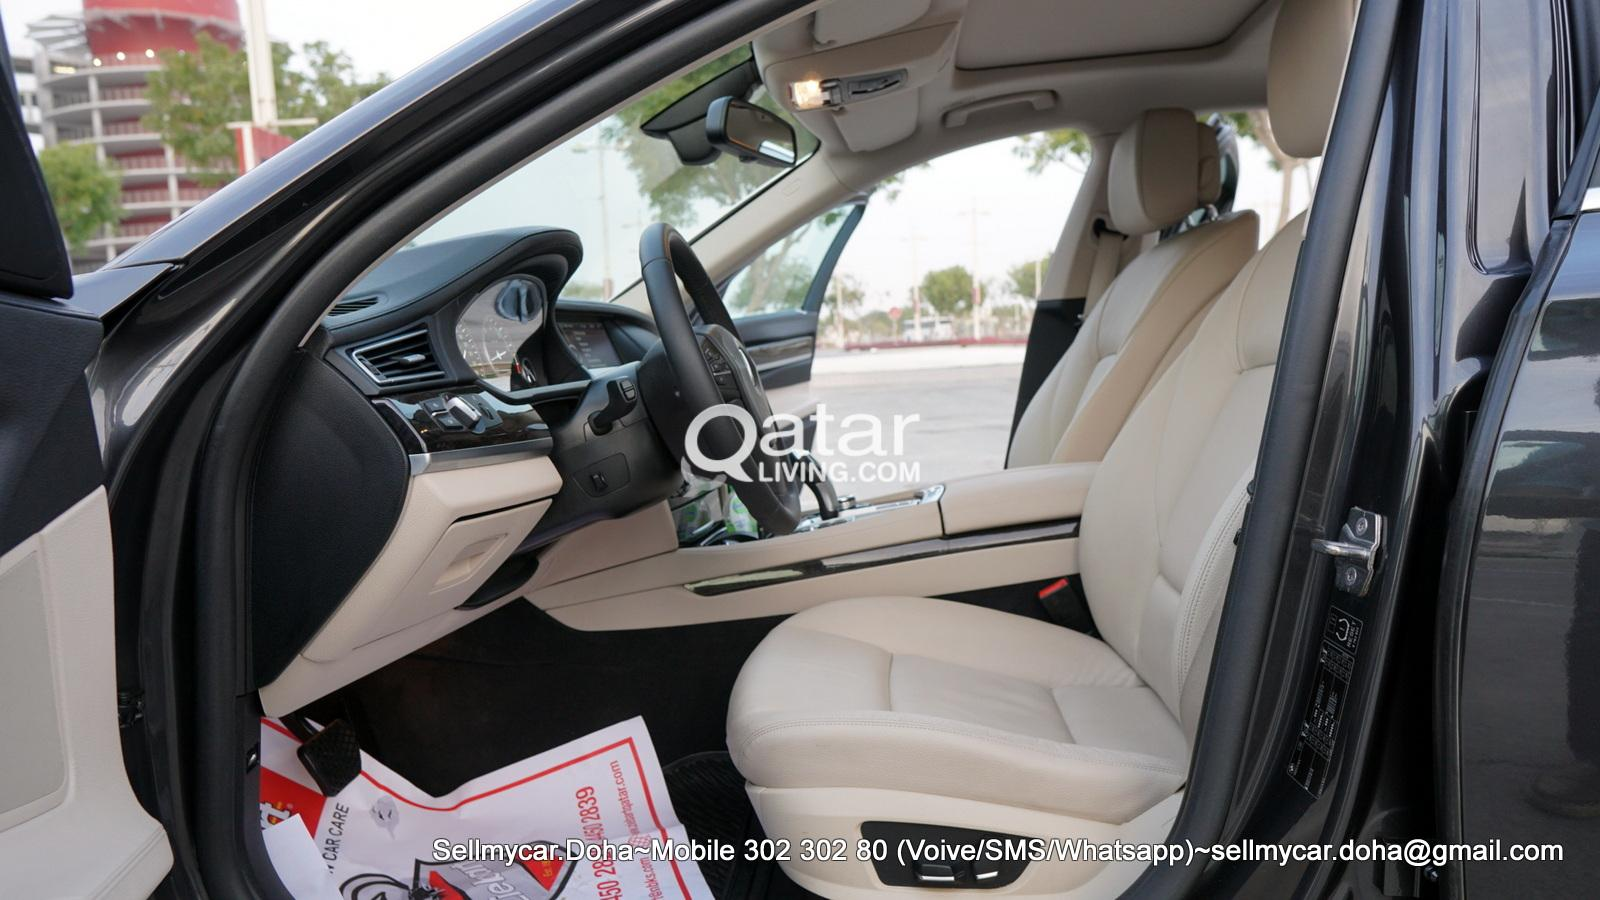 2012 BMW 730iL (Premium Package) More Photo Available Upon Request